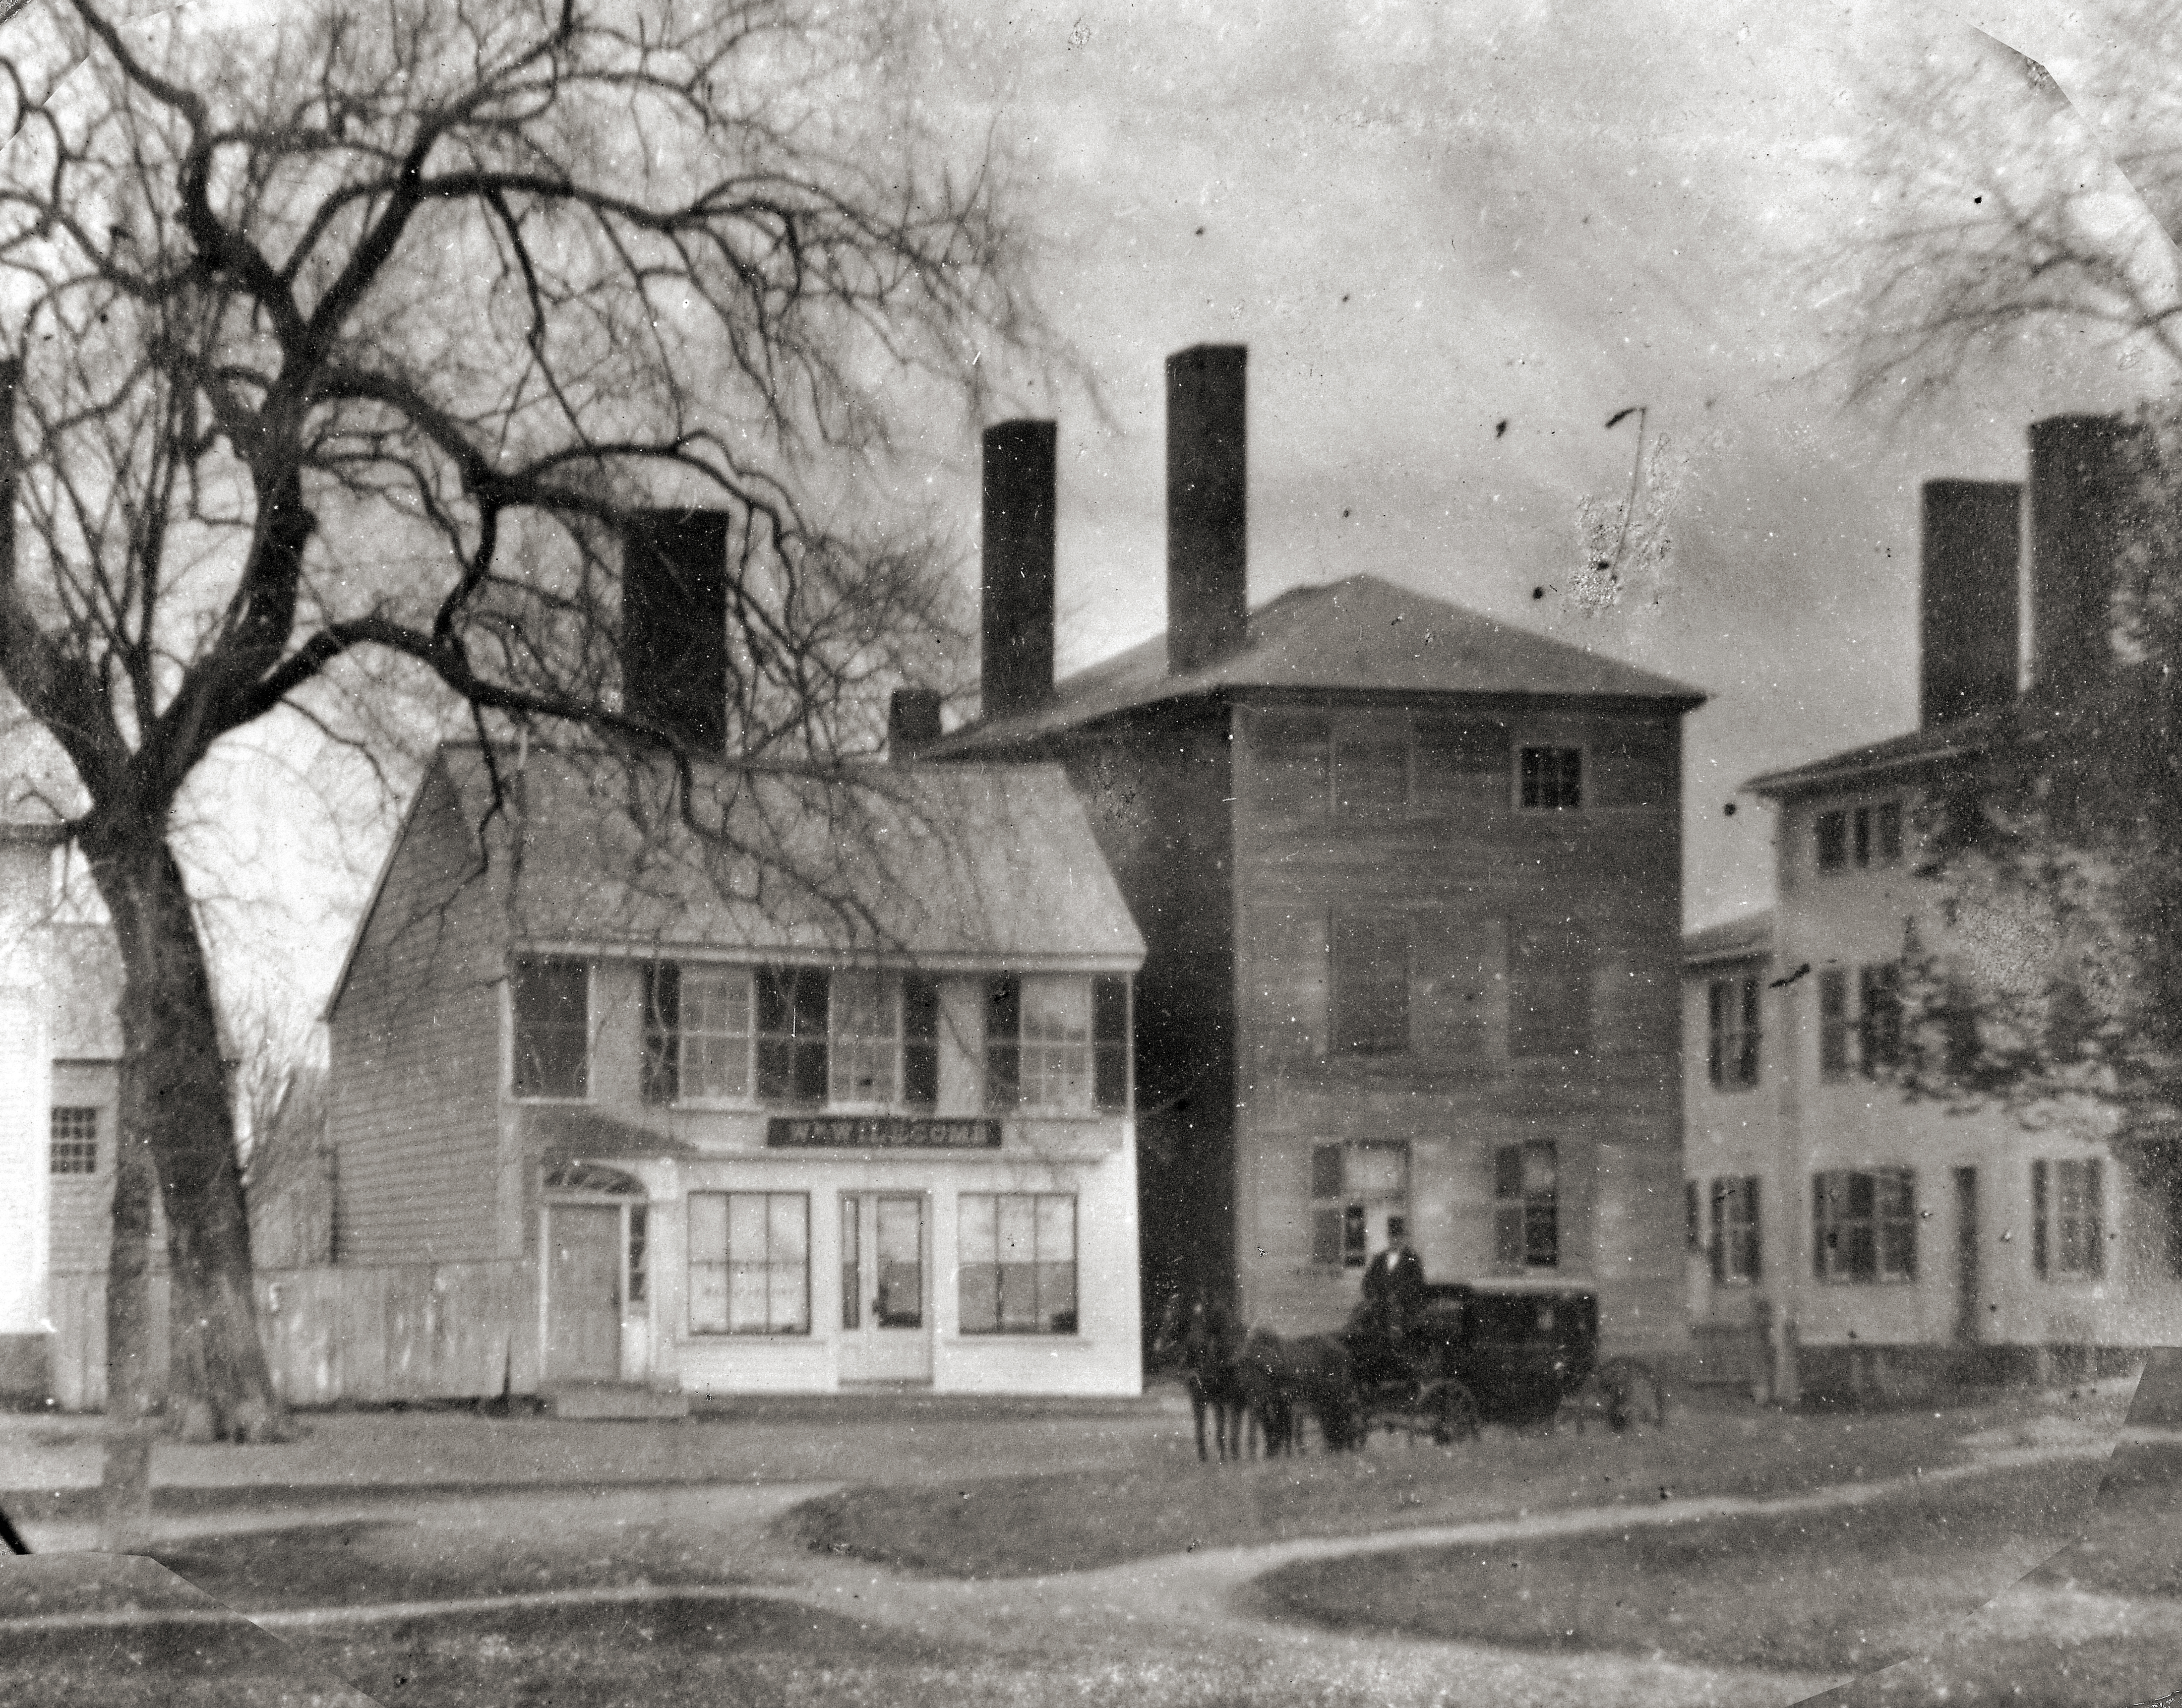 The Willcomb house on N. Main St.